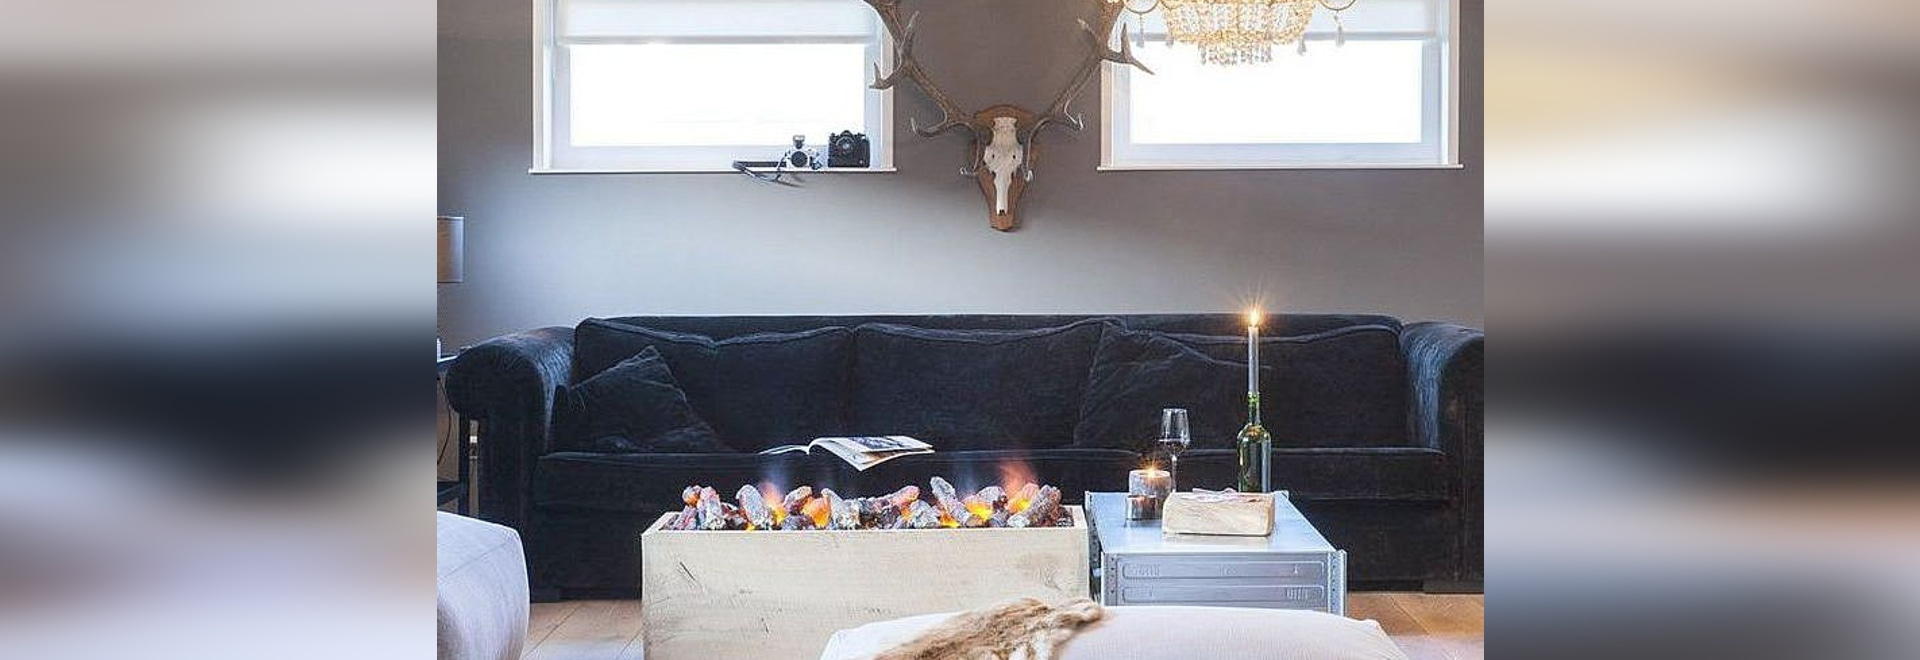 new electrical fireplace by kamin design kamin design gmbh